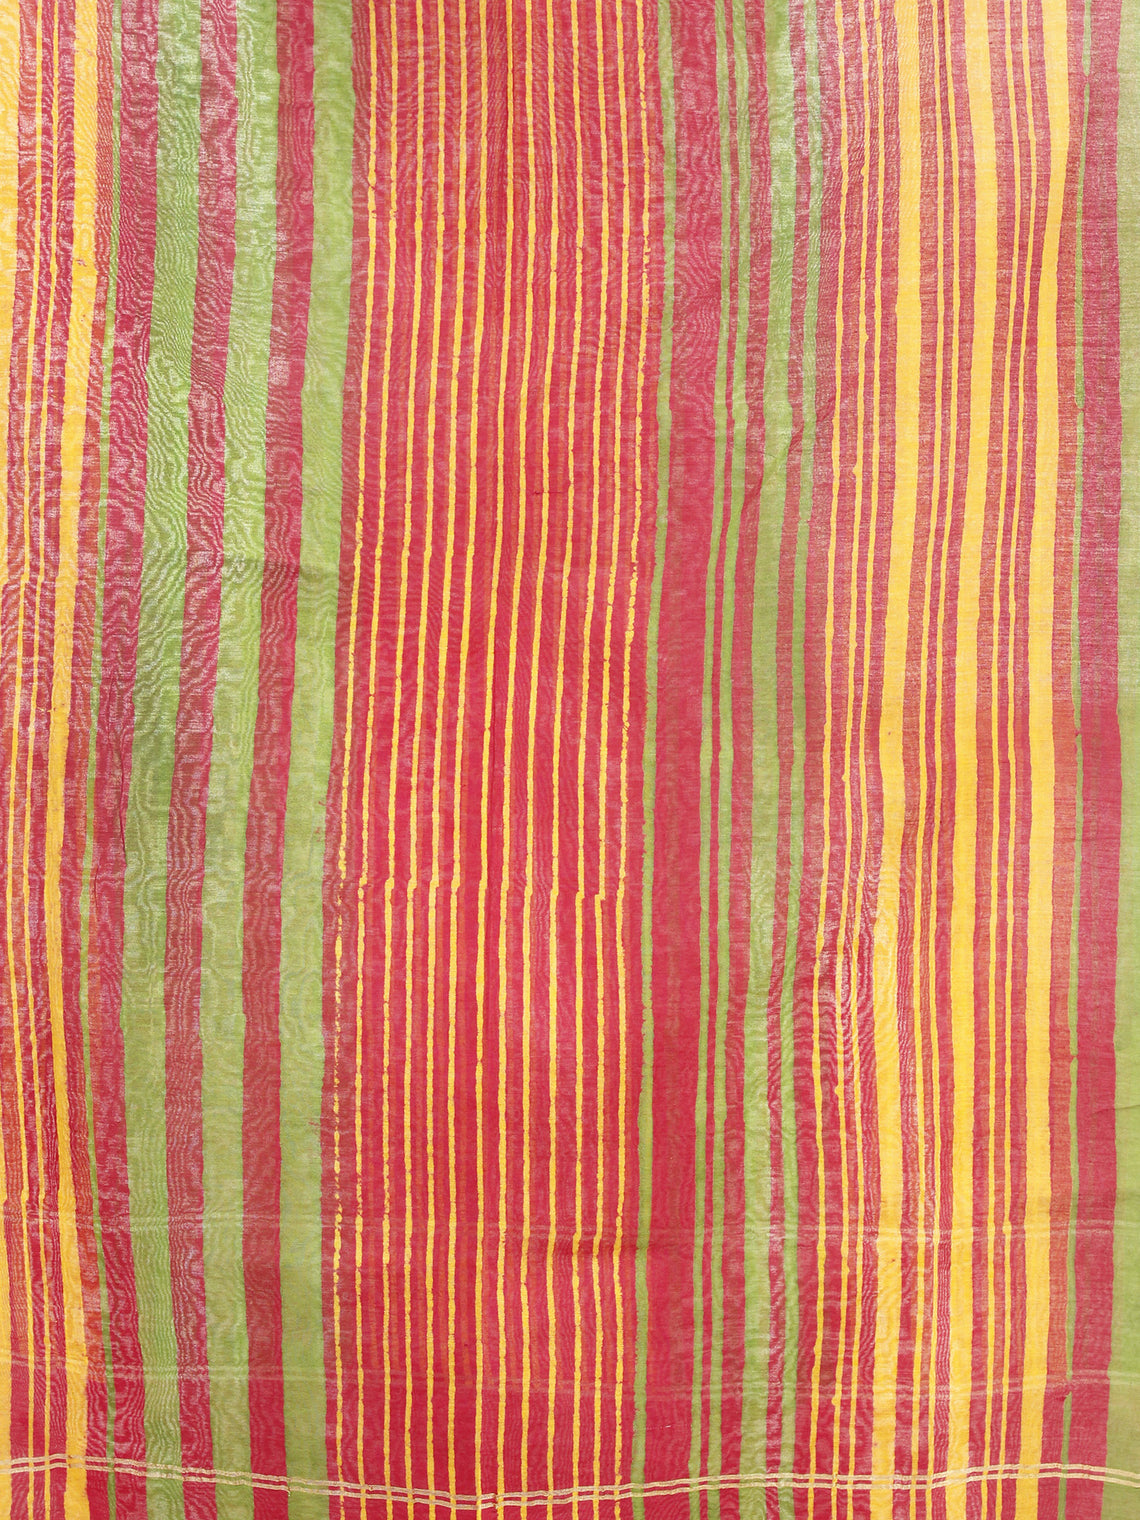 Red Yellow Green Chanderi Hand Black Printed & Hand Painted Dupatta - D04170251